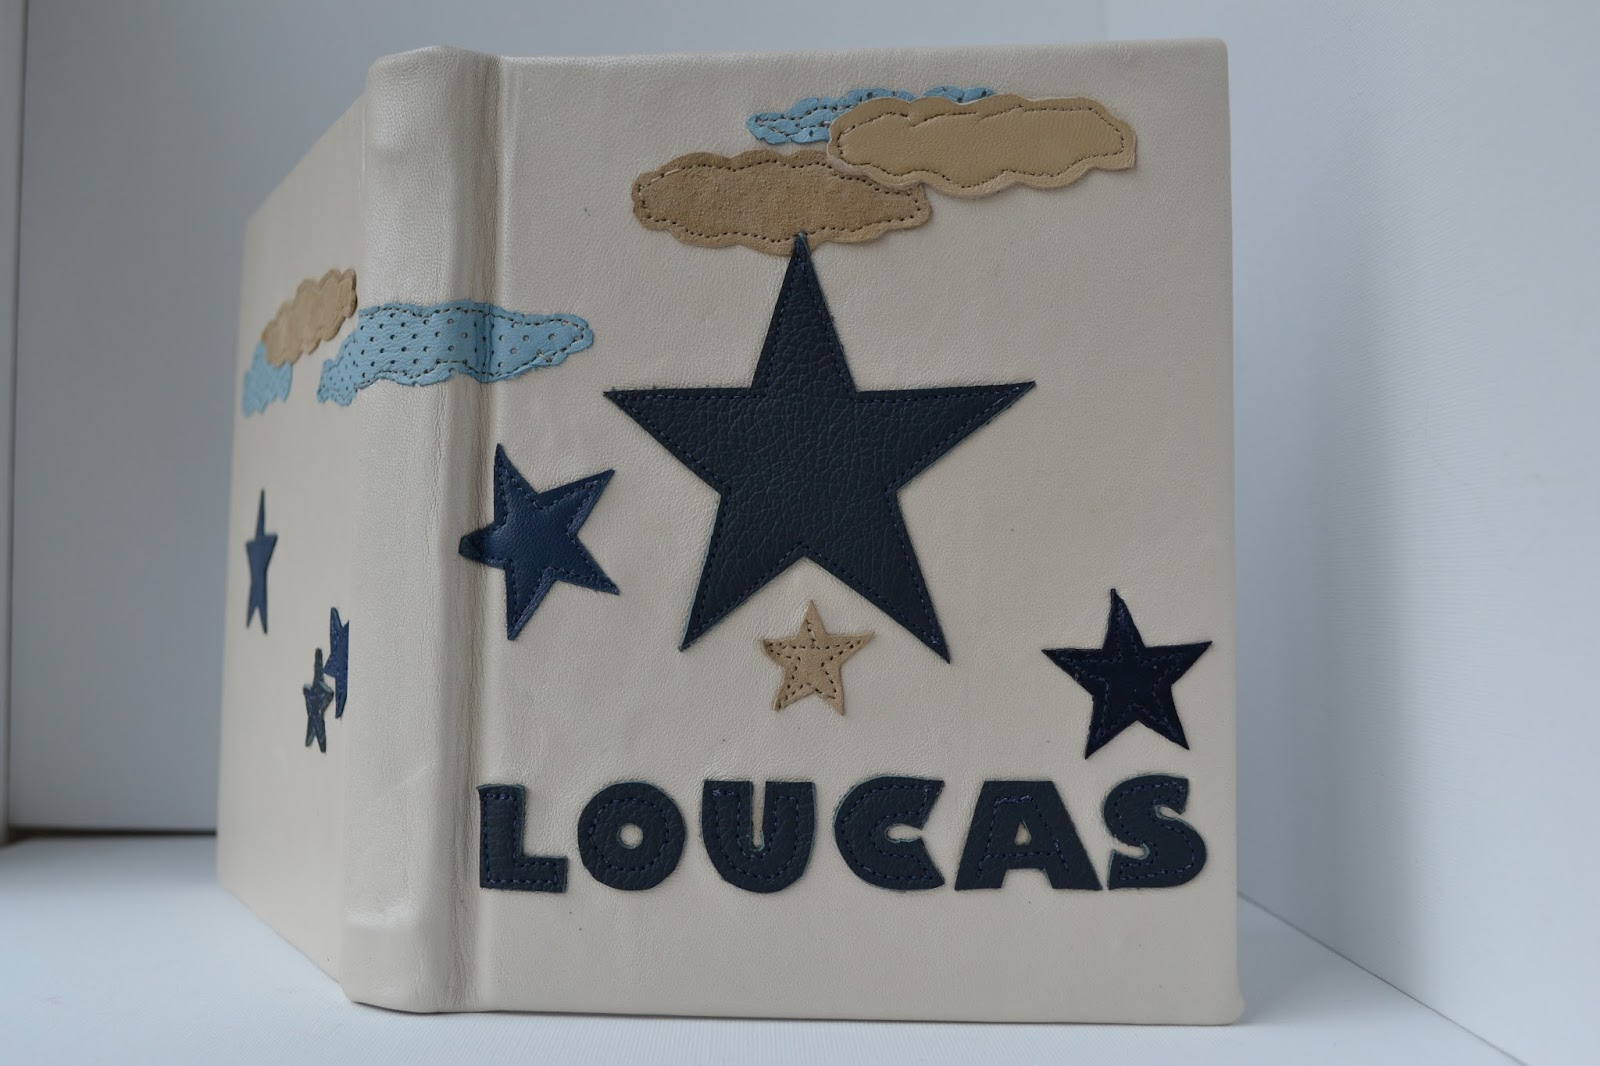 Meloleather bespoke Christening Bible cover made by Melo 2013